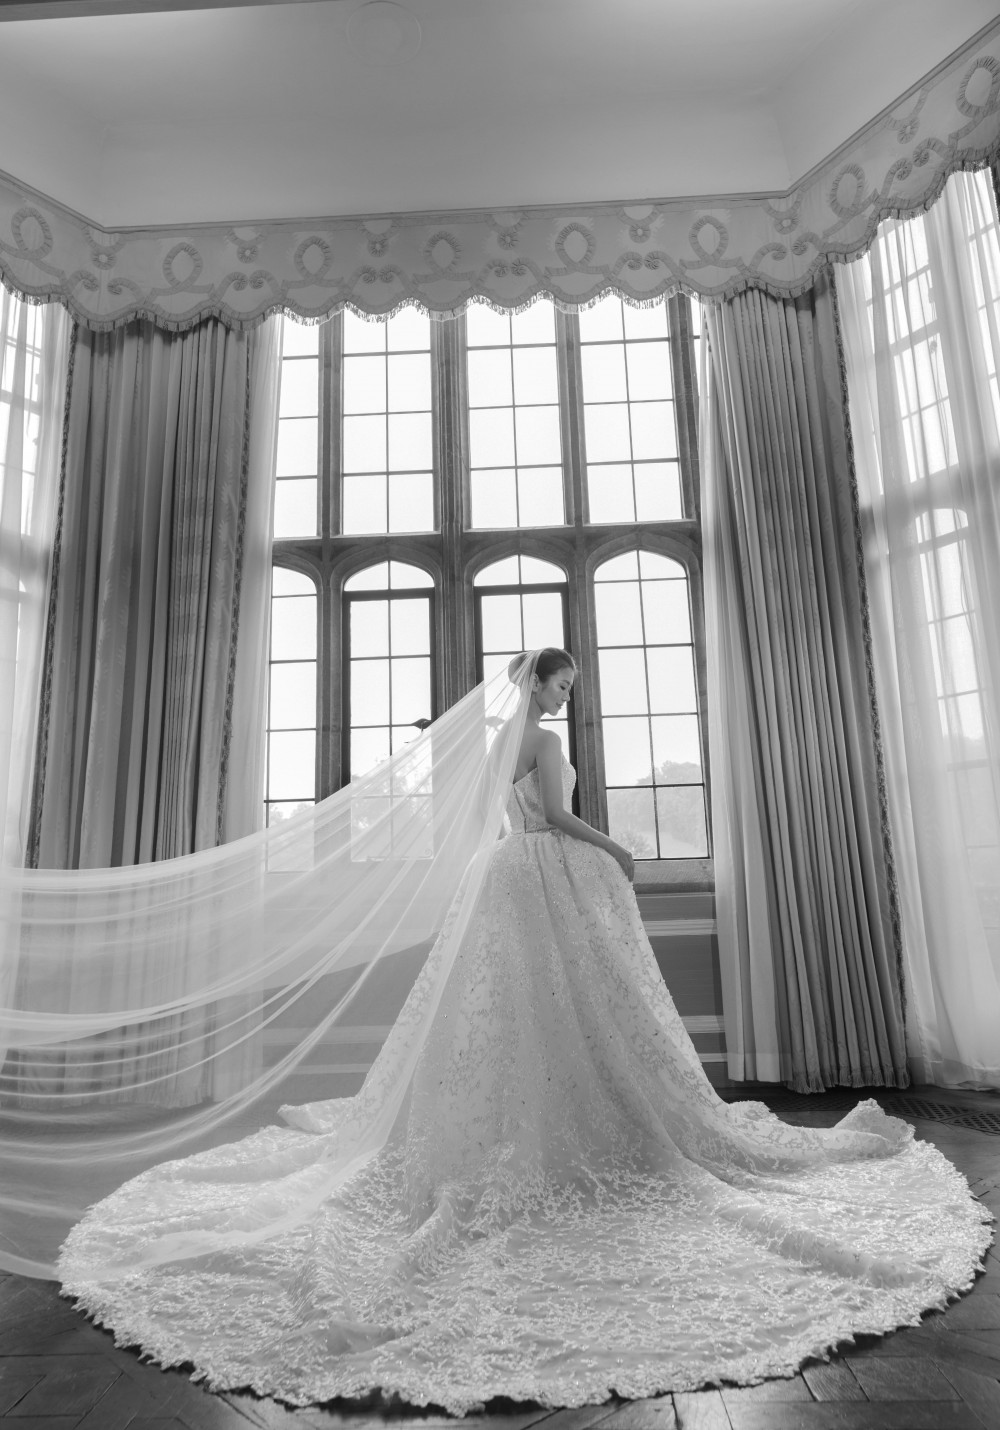 Wedding Day Hair and Makeup at Leeds Castle - Make Me Bridal Artist: SJB Hair and Makeup. Photography by: Unknown. #bridalhair #bridalmakeup